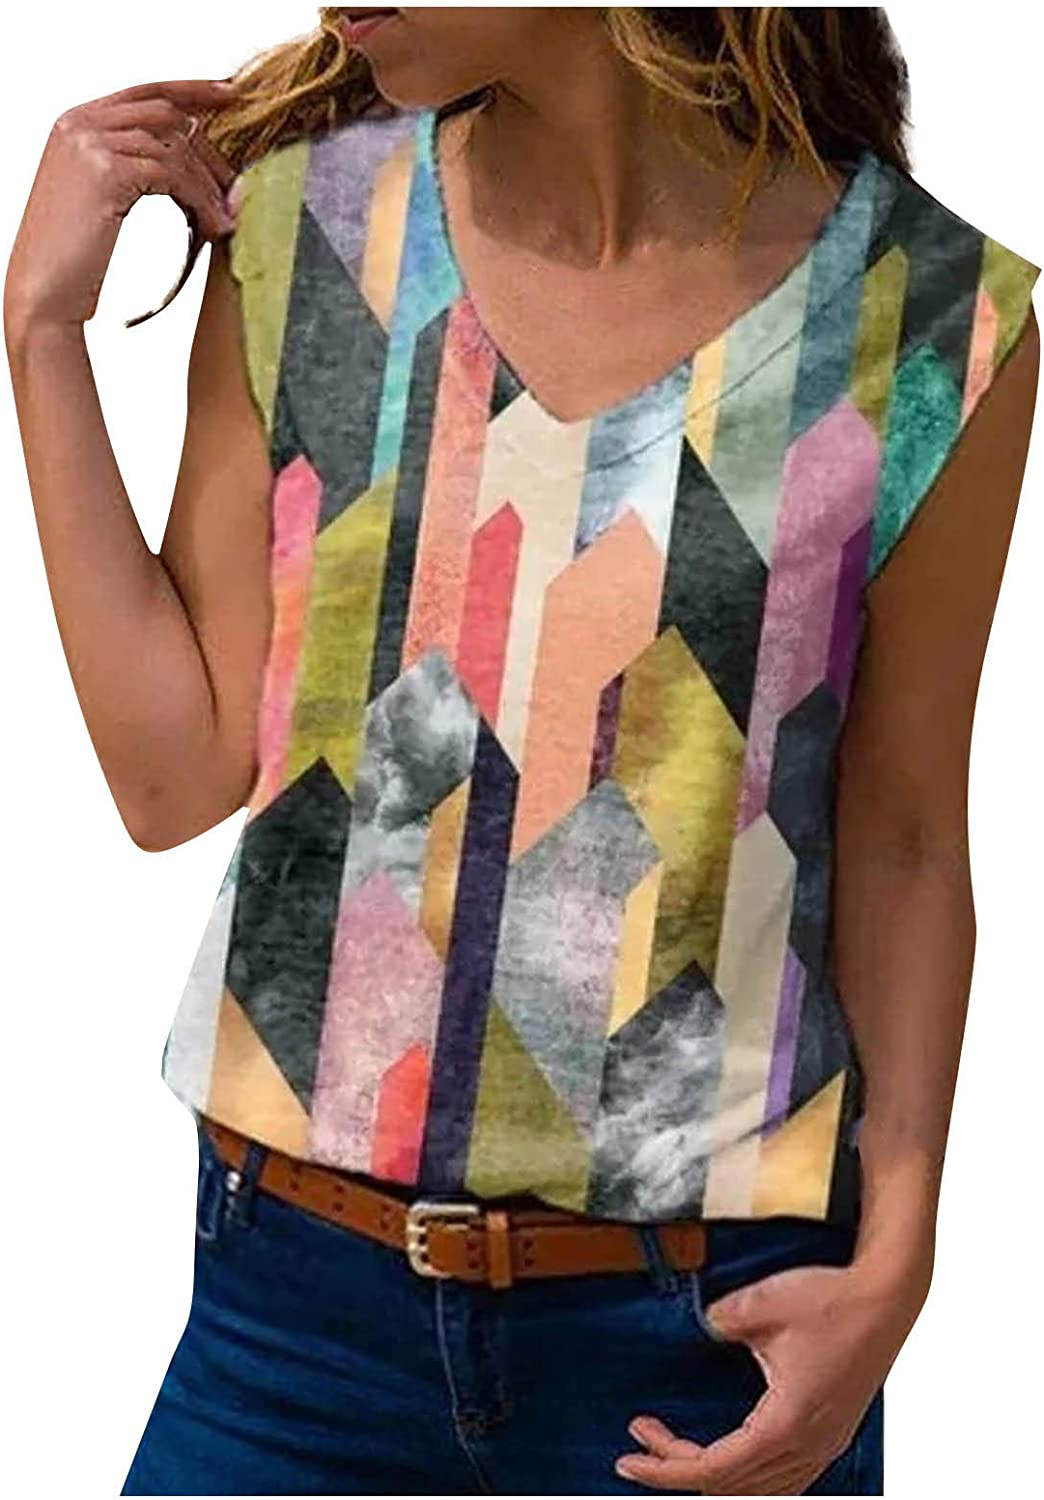 Women's Summer V Neck Sleeveless Cami Tank Tops Floral Graphic Print Tie Dye Vests Blouse for Women Trendy